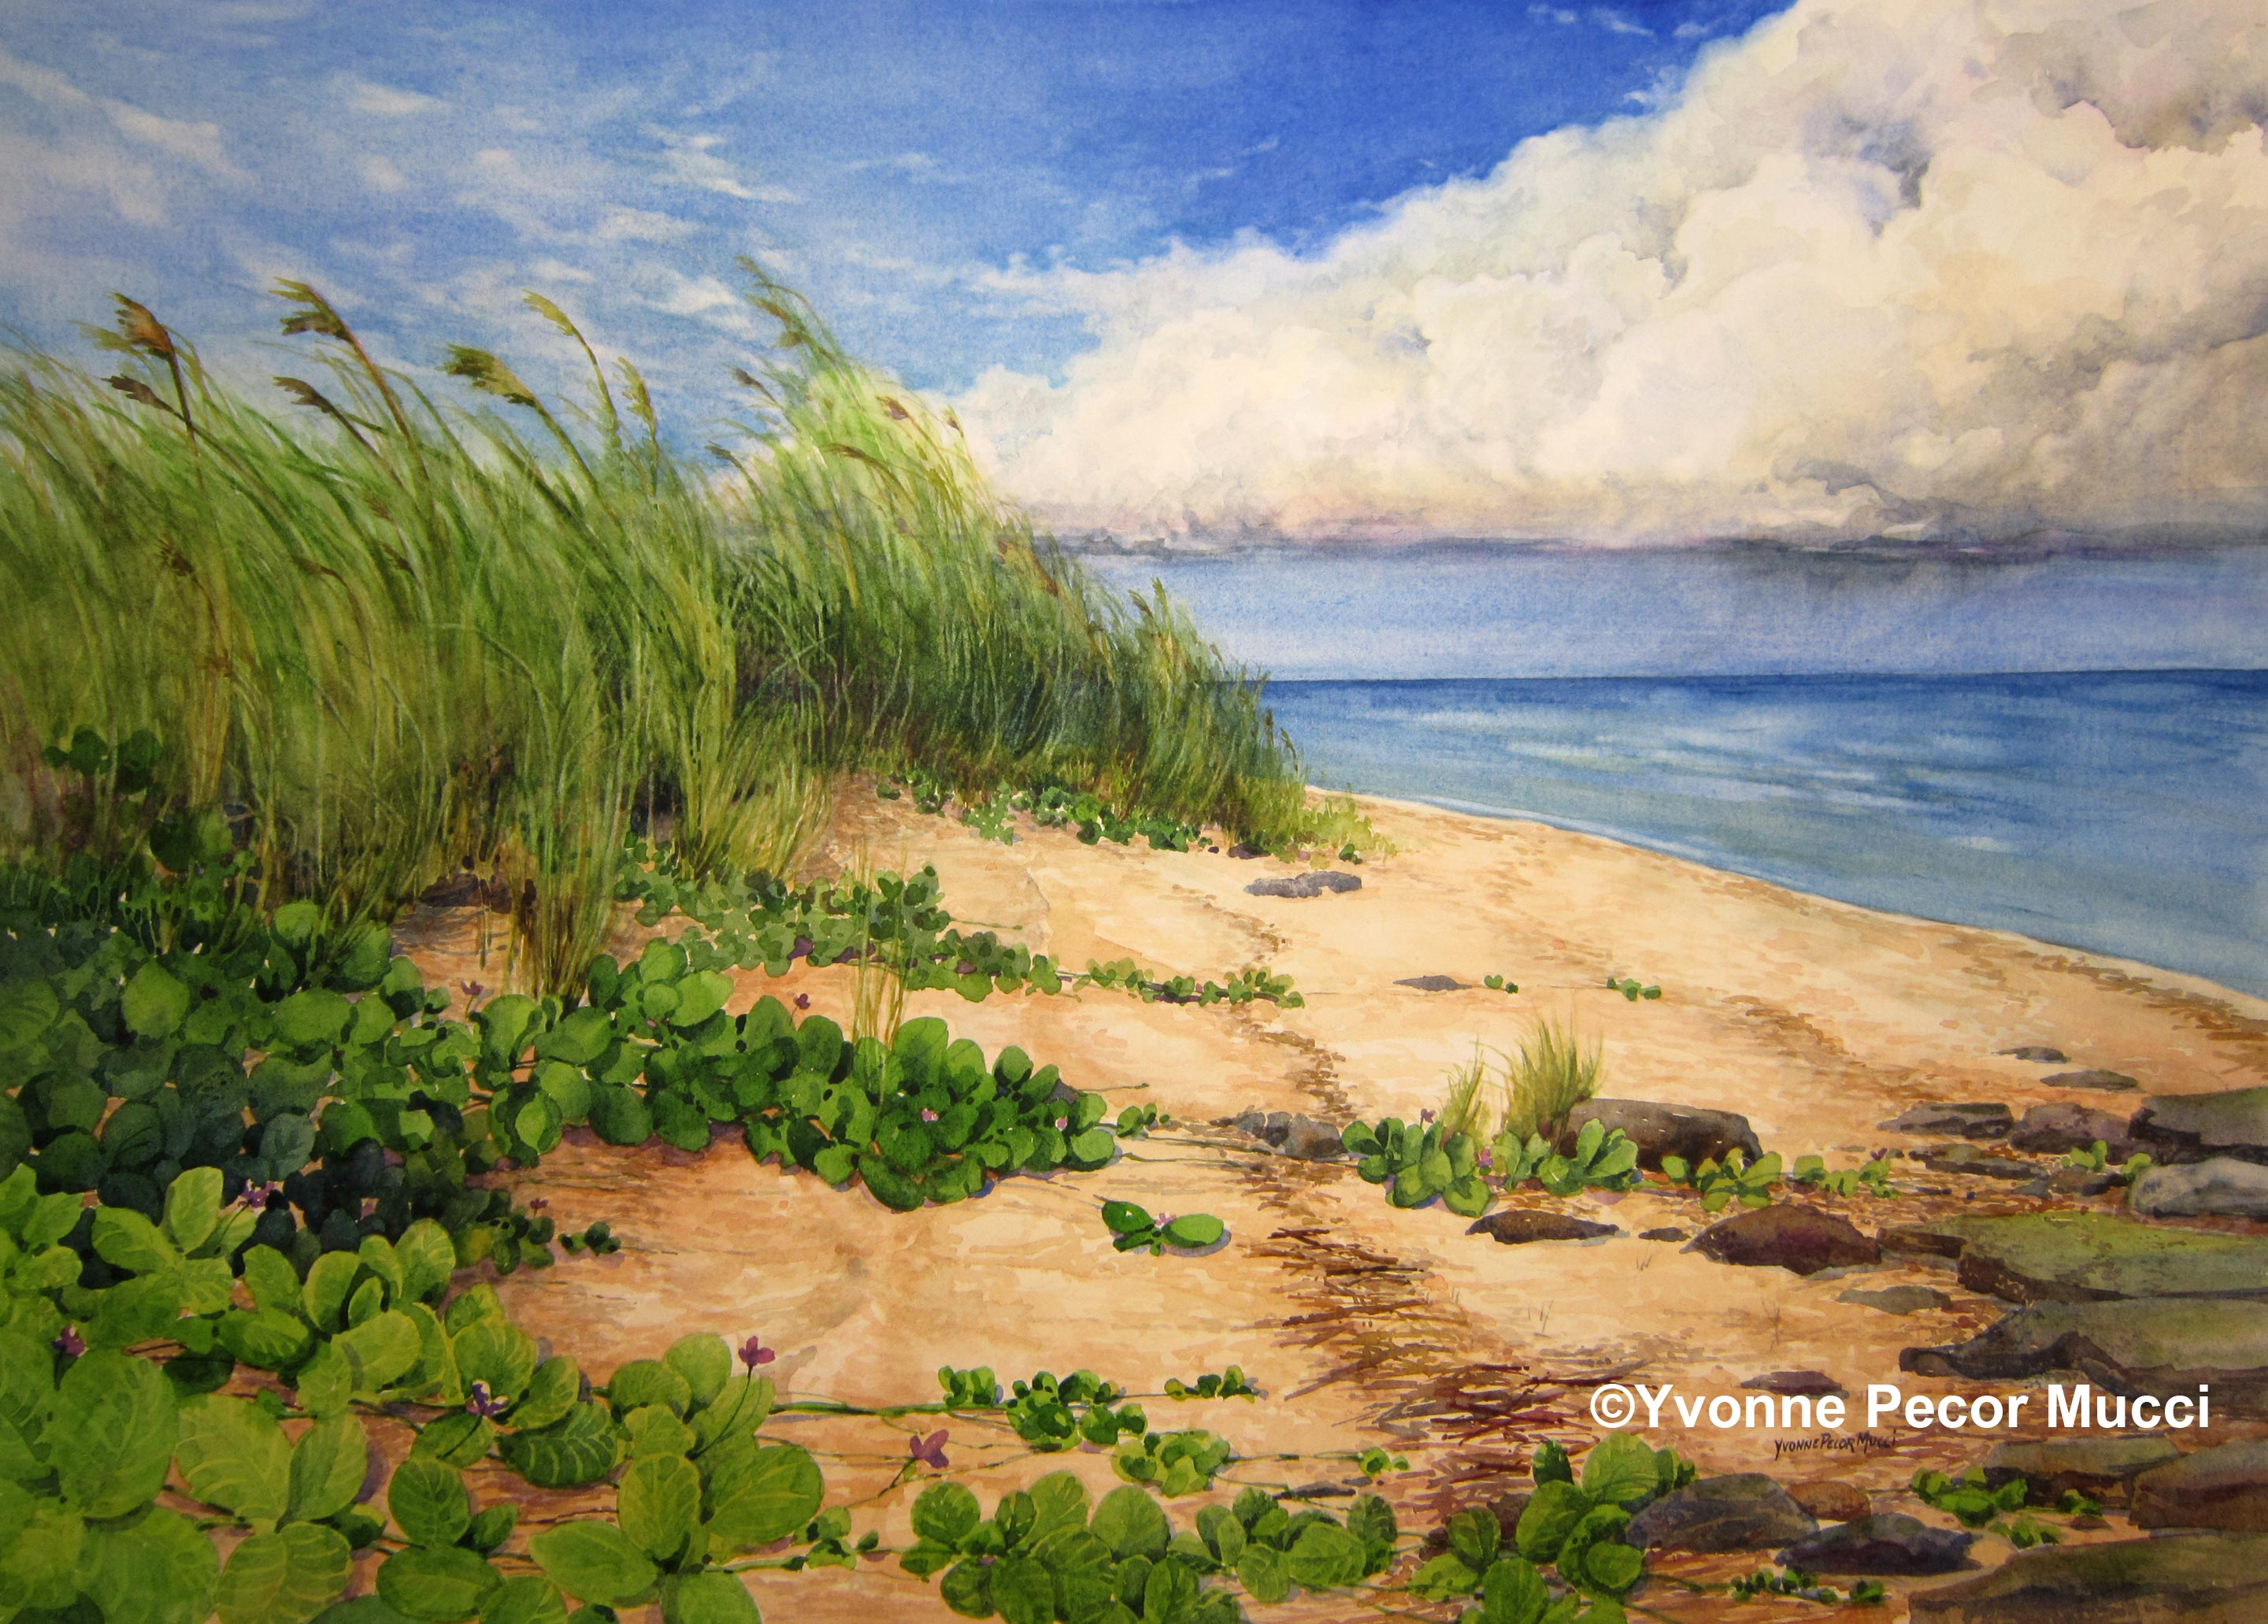 The Shore by Yvonne Pecor Mucci (Framed 27 x 20)